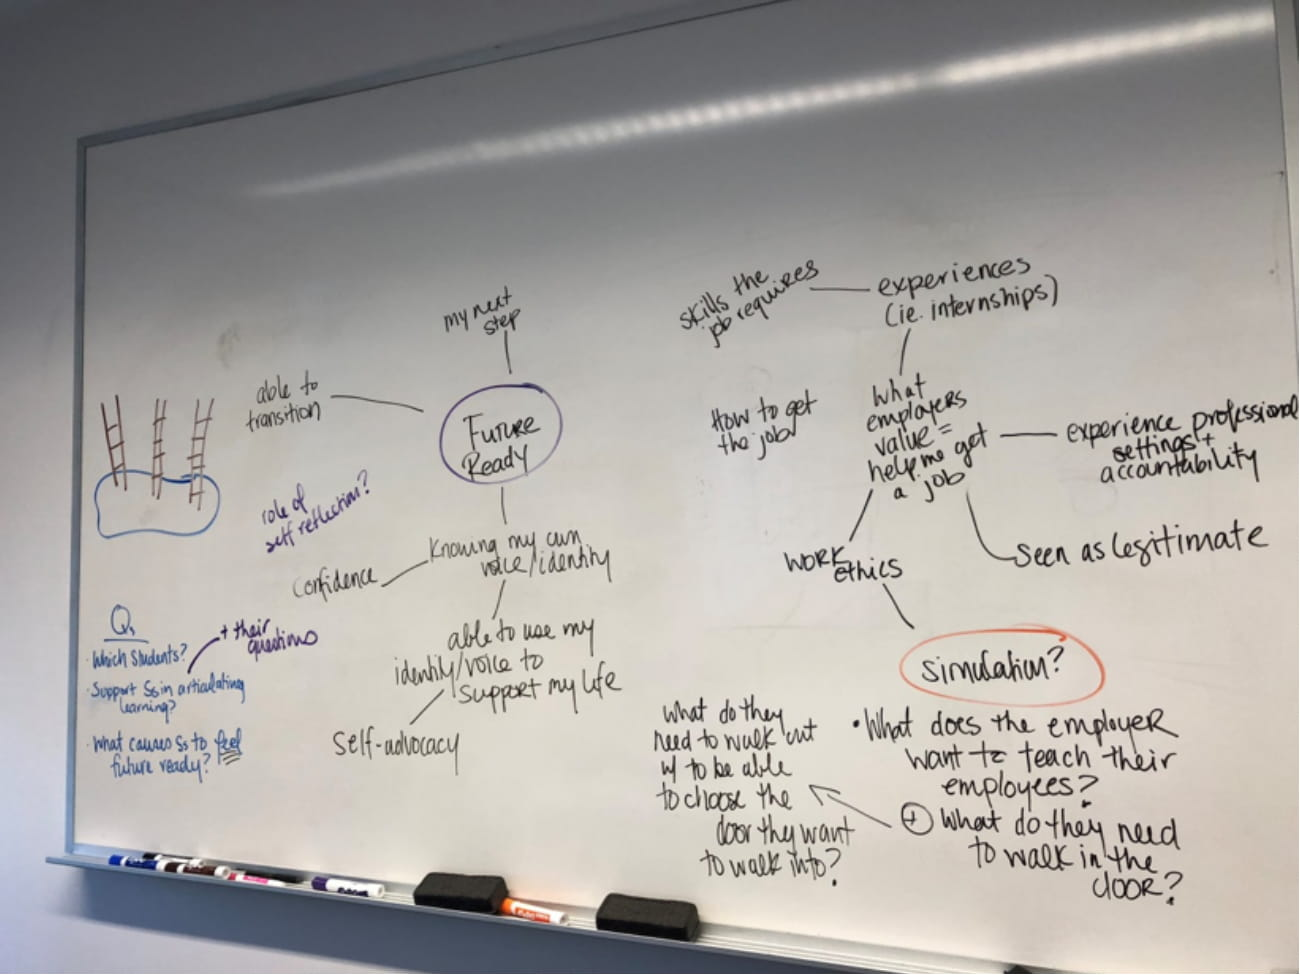 Photo of a brainstorming session on a whiteboard.